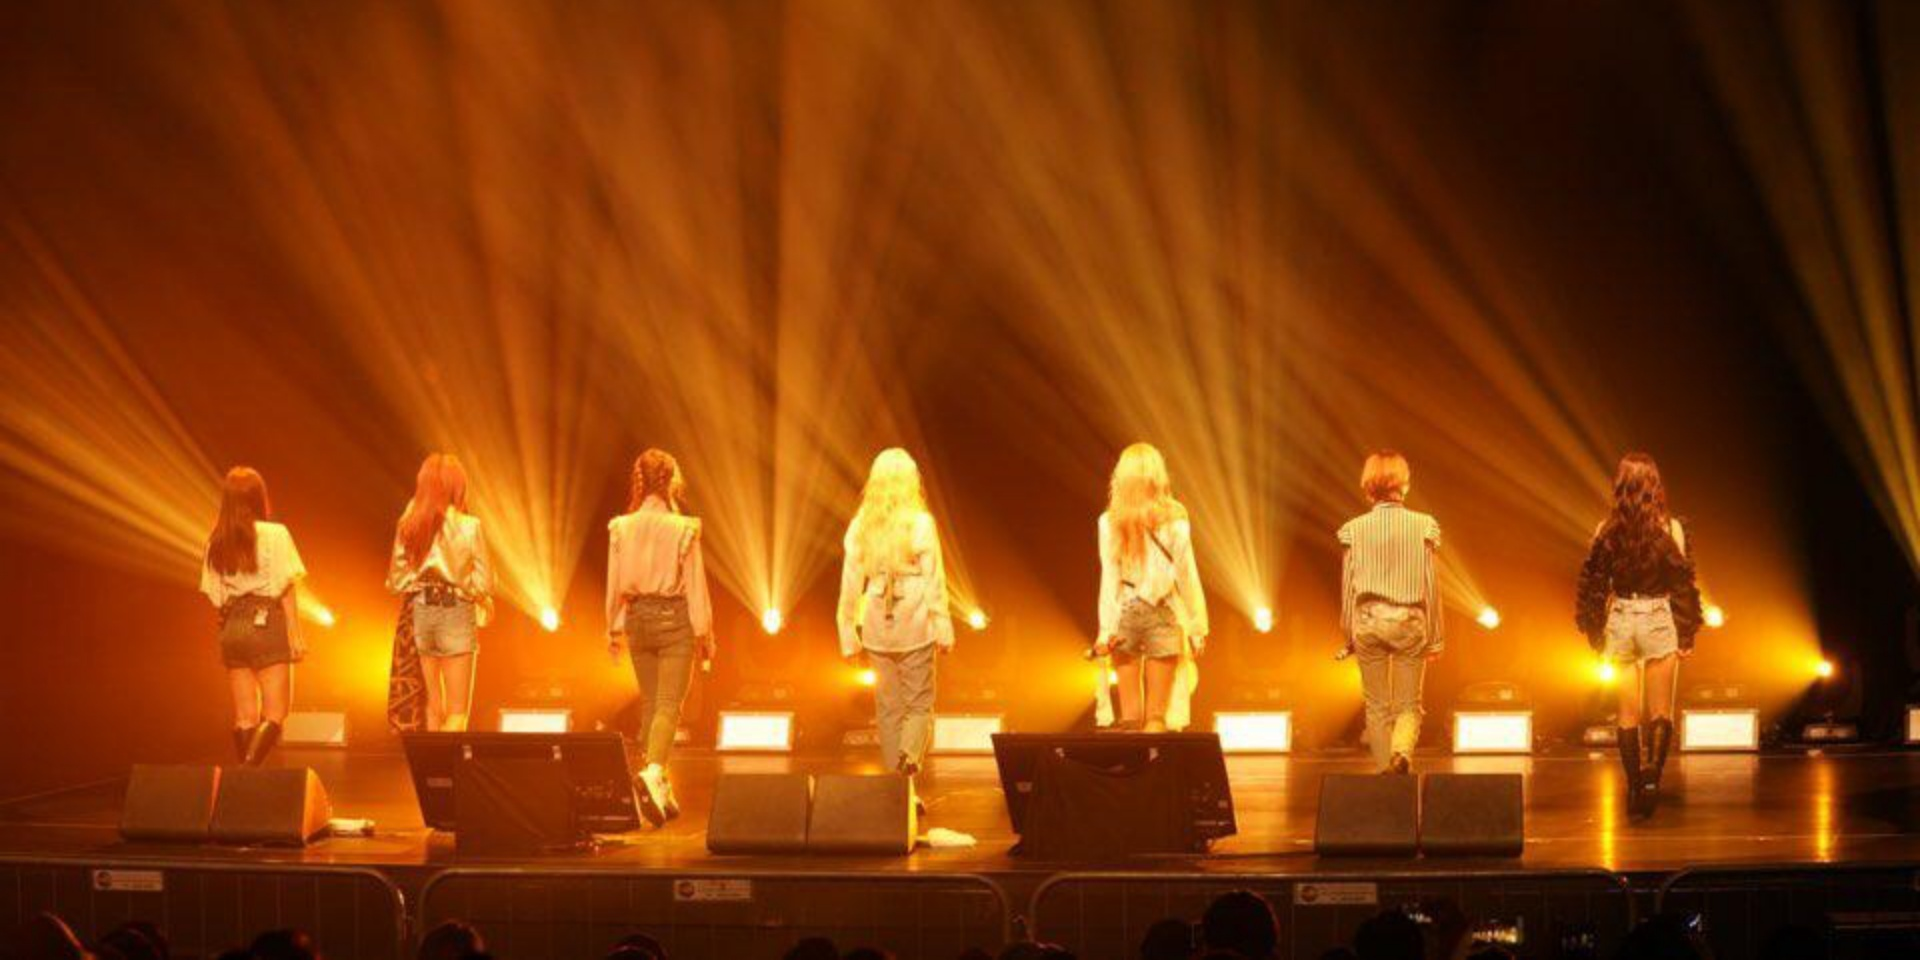 Dreamcatcher thrills InSomnias with electrifying Singapore debut show – gig report